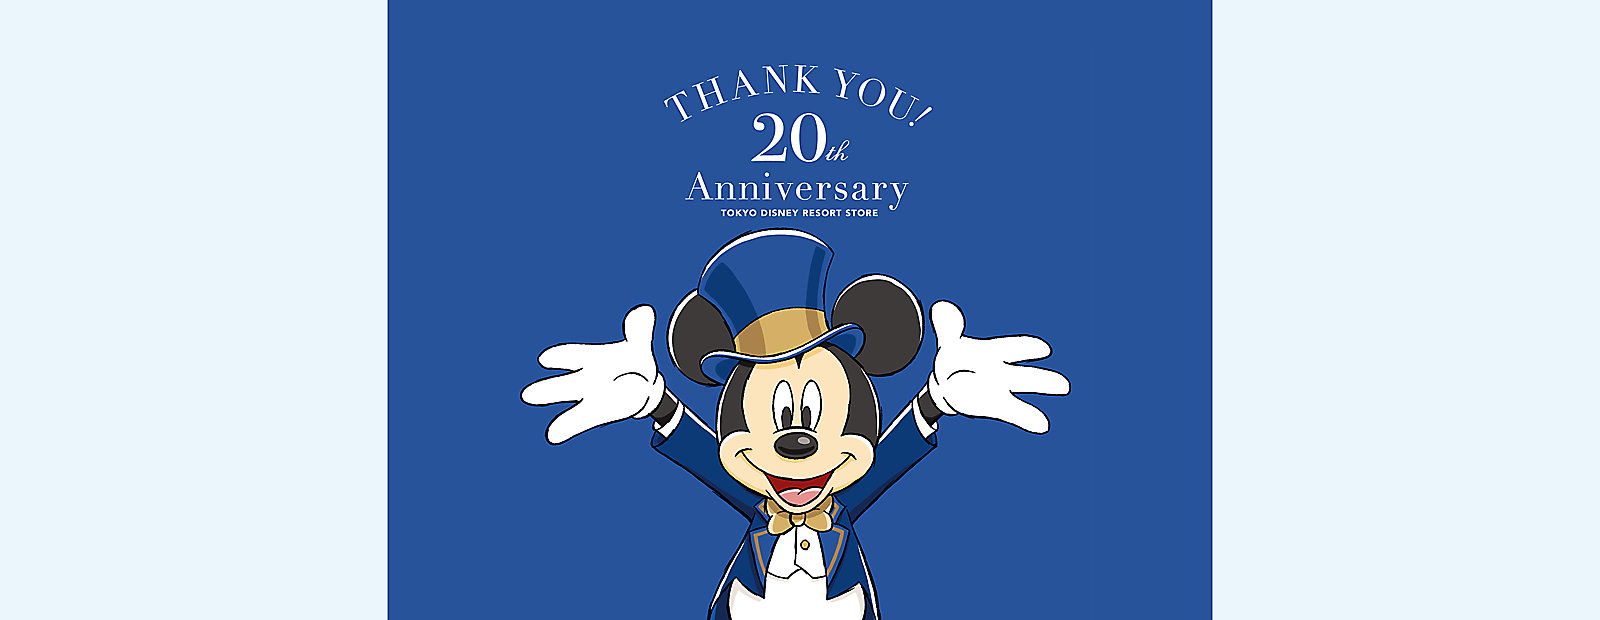 THANK YOU! 20th Anniversary ディズニーストア東京ディズニーリゾート店